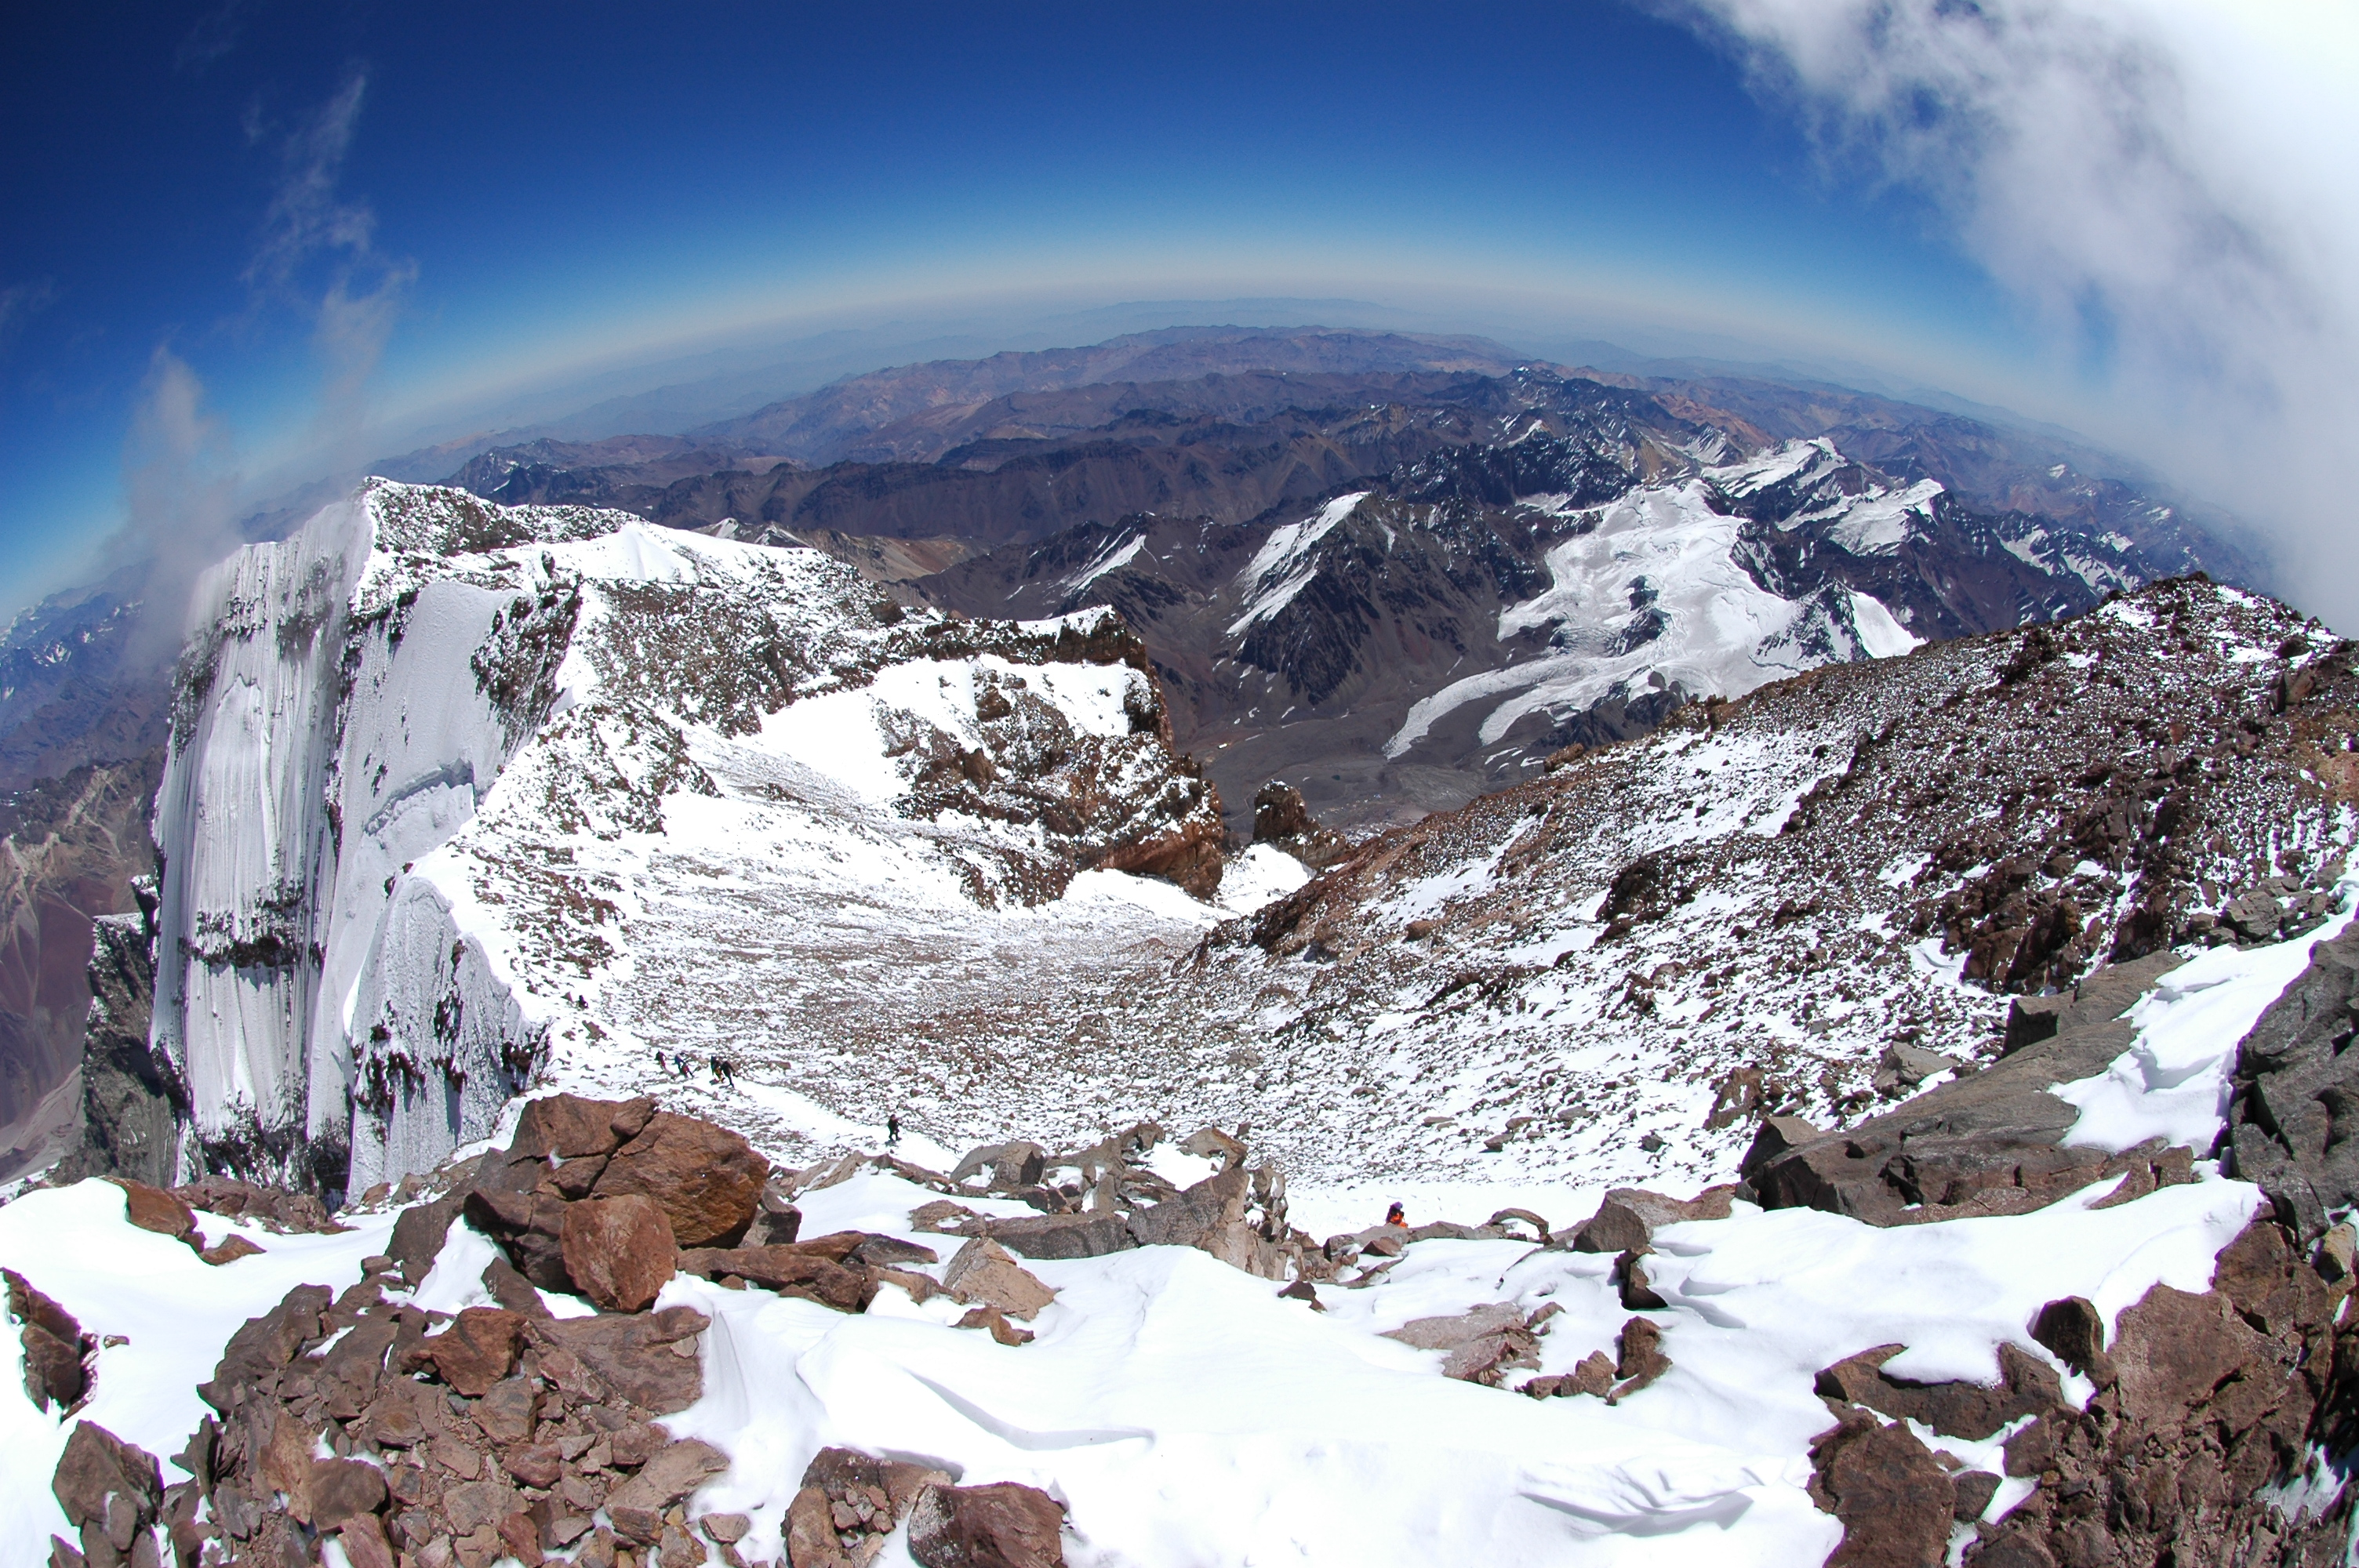 Great news! This season all of our expeditions have reached the top of America so far!